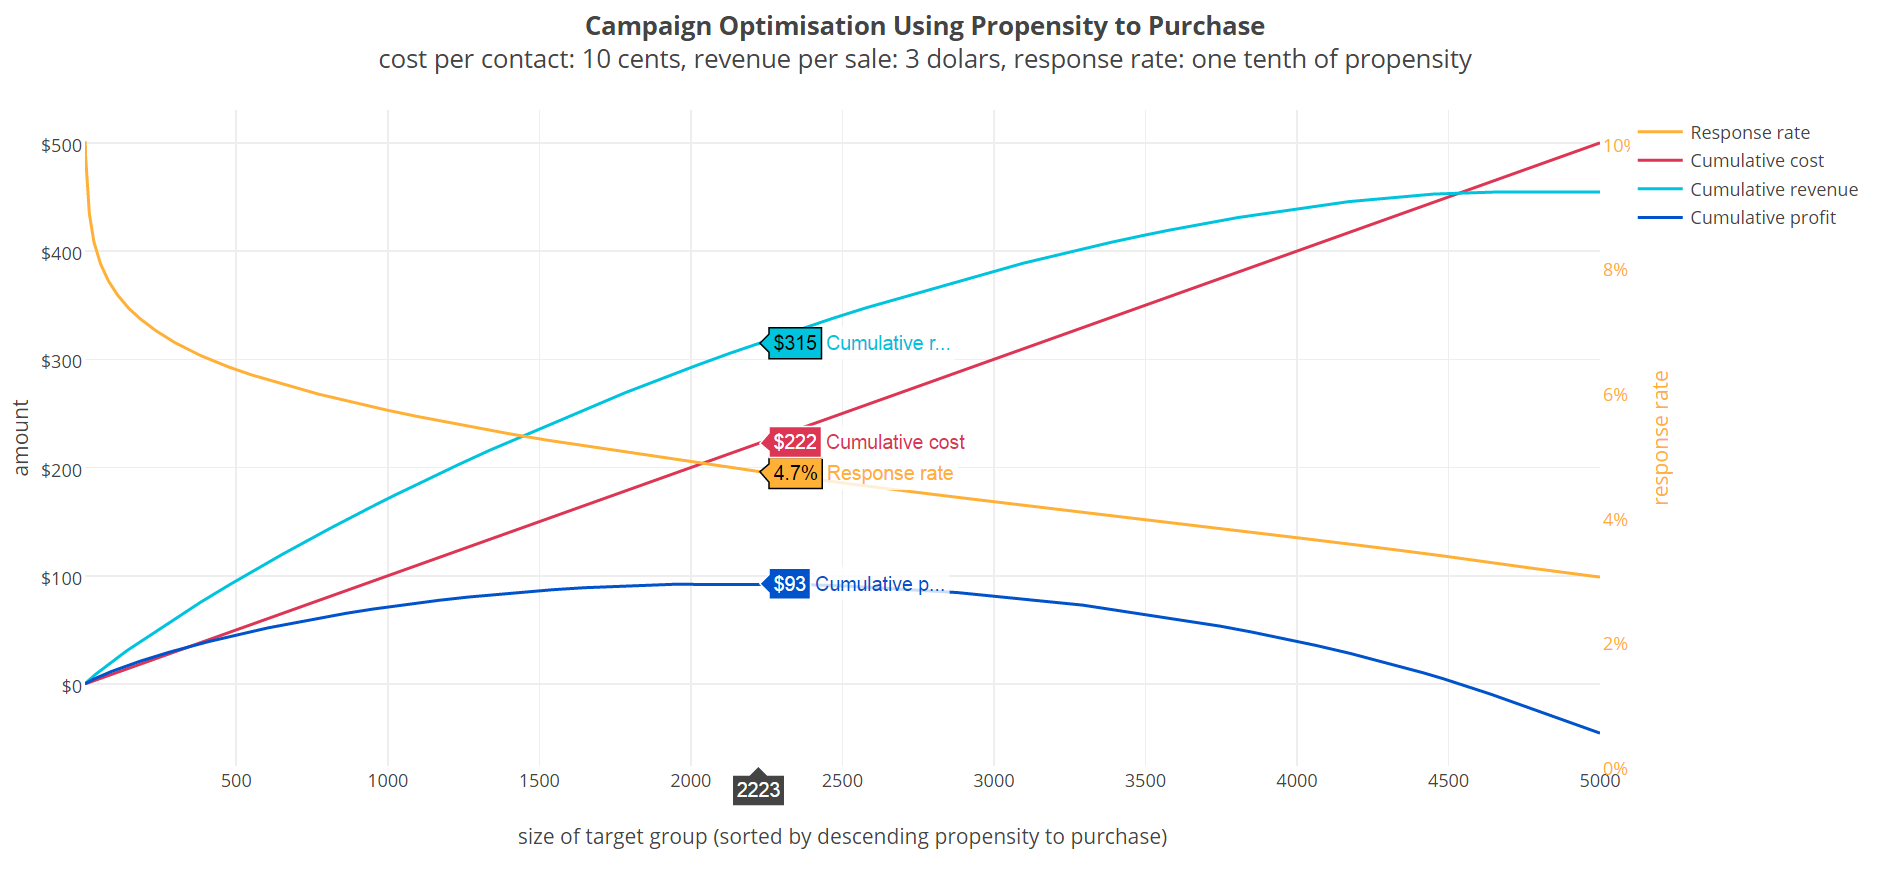 Propensity modelling and how it is relevant for modern marketing